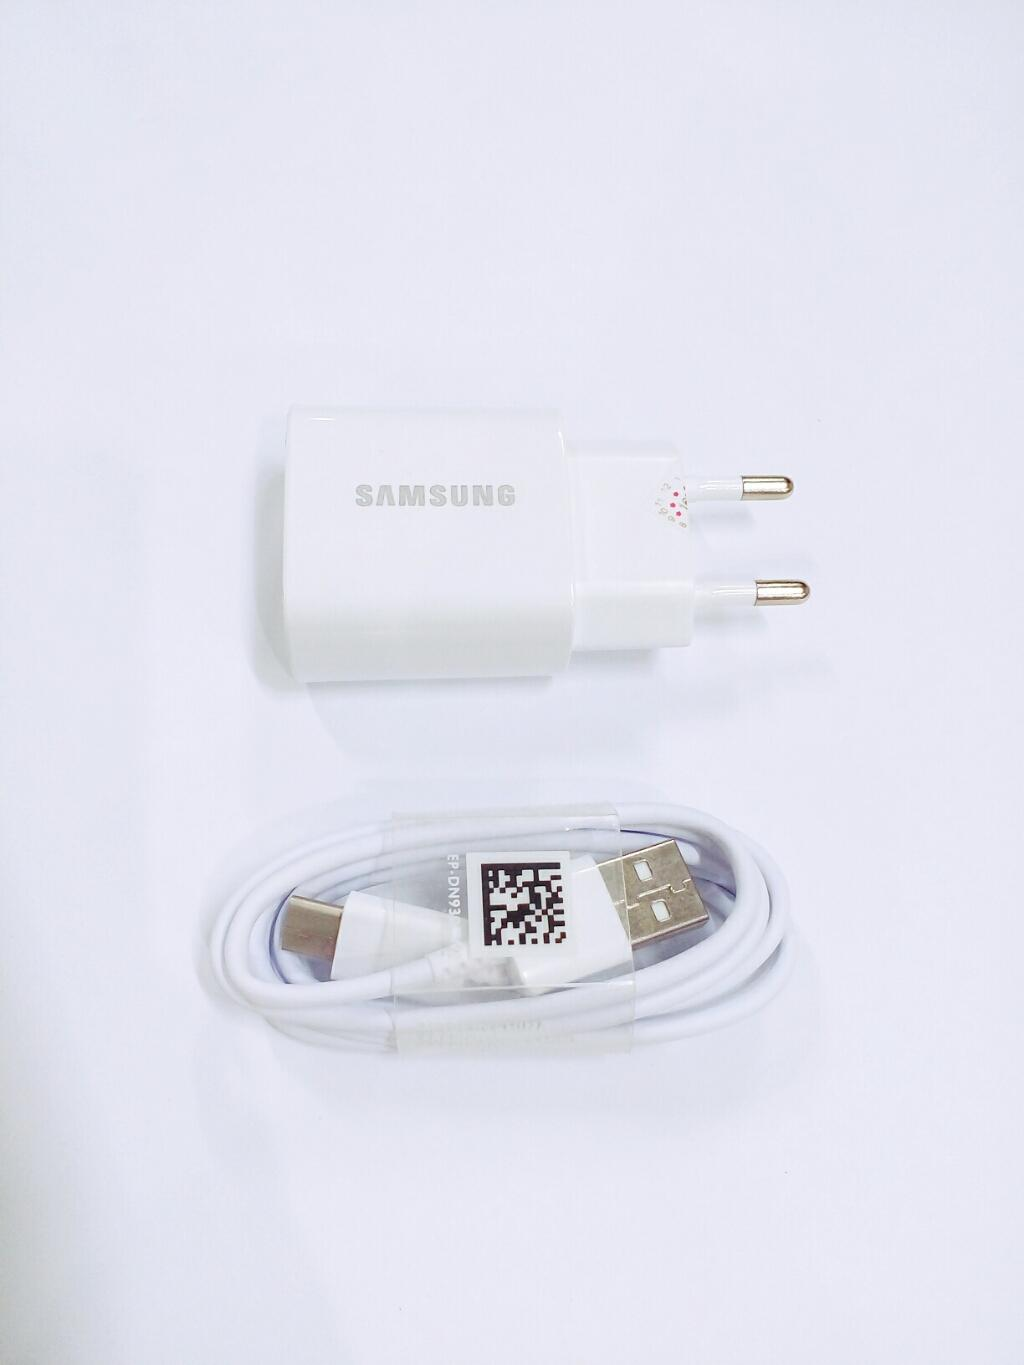 Samsung Galaxy Adapter Fast Charger 25 Watt With Type C For Galaxy Note 8 / Galaxy S8 Dan S8 Plus / Galaxy Note 9